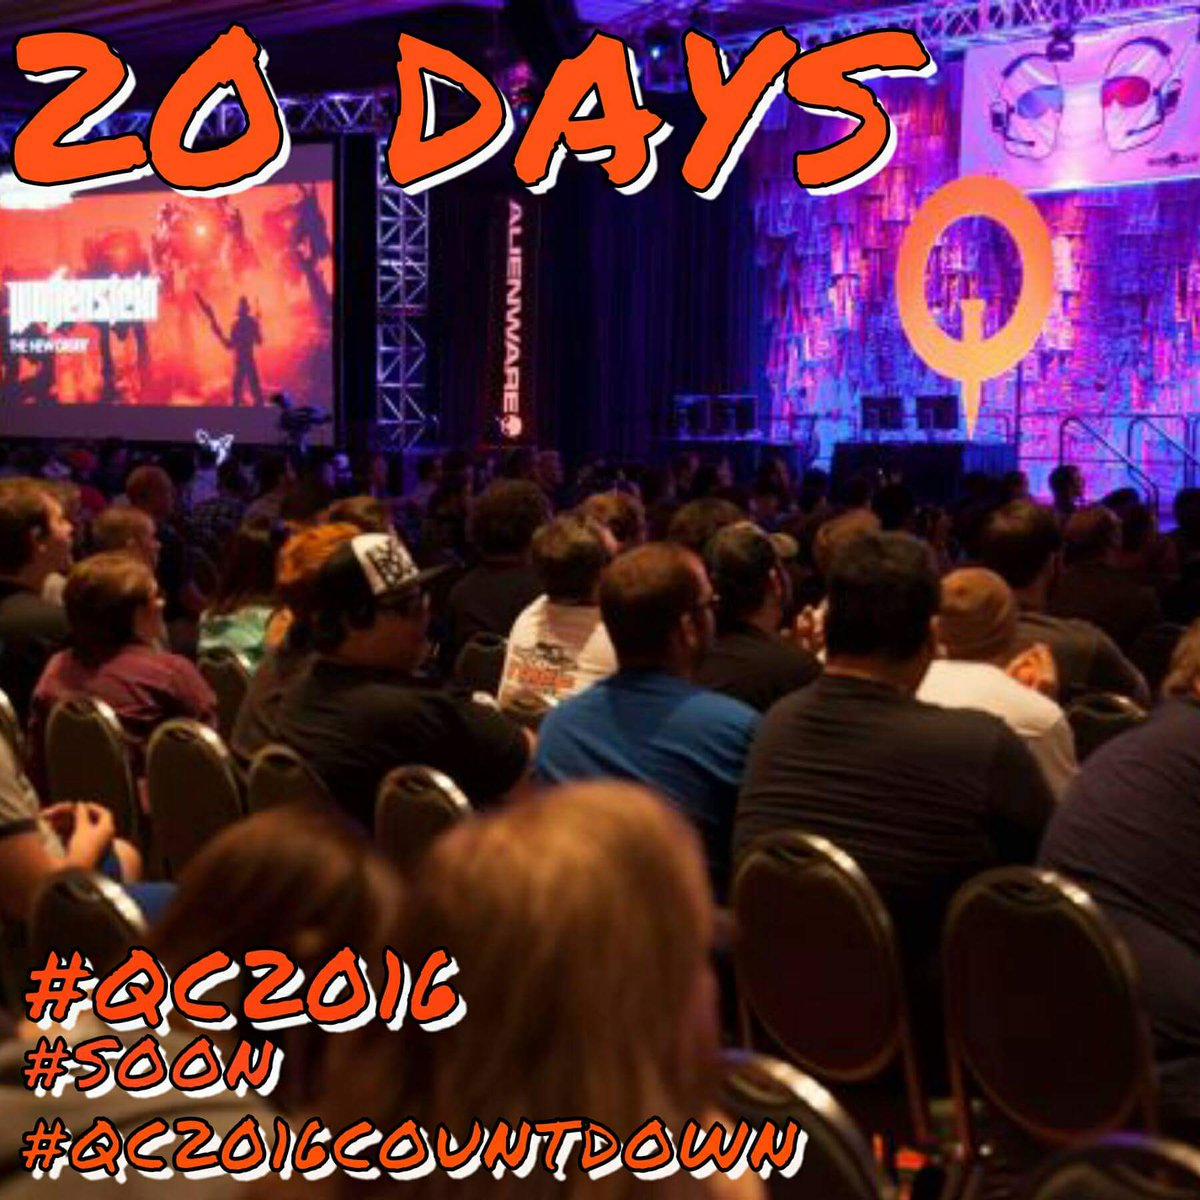 20 DAYS TILL @QuakeCon ! Who ready!? #SOON #qc2016 #quakecon #partycentral @BAWLSGuarana @bethesda @idSoftware https://t.co/i6zGxpMnsG